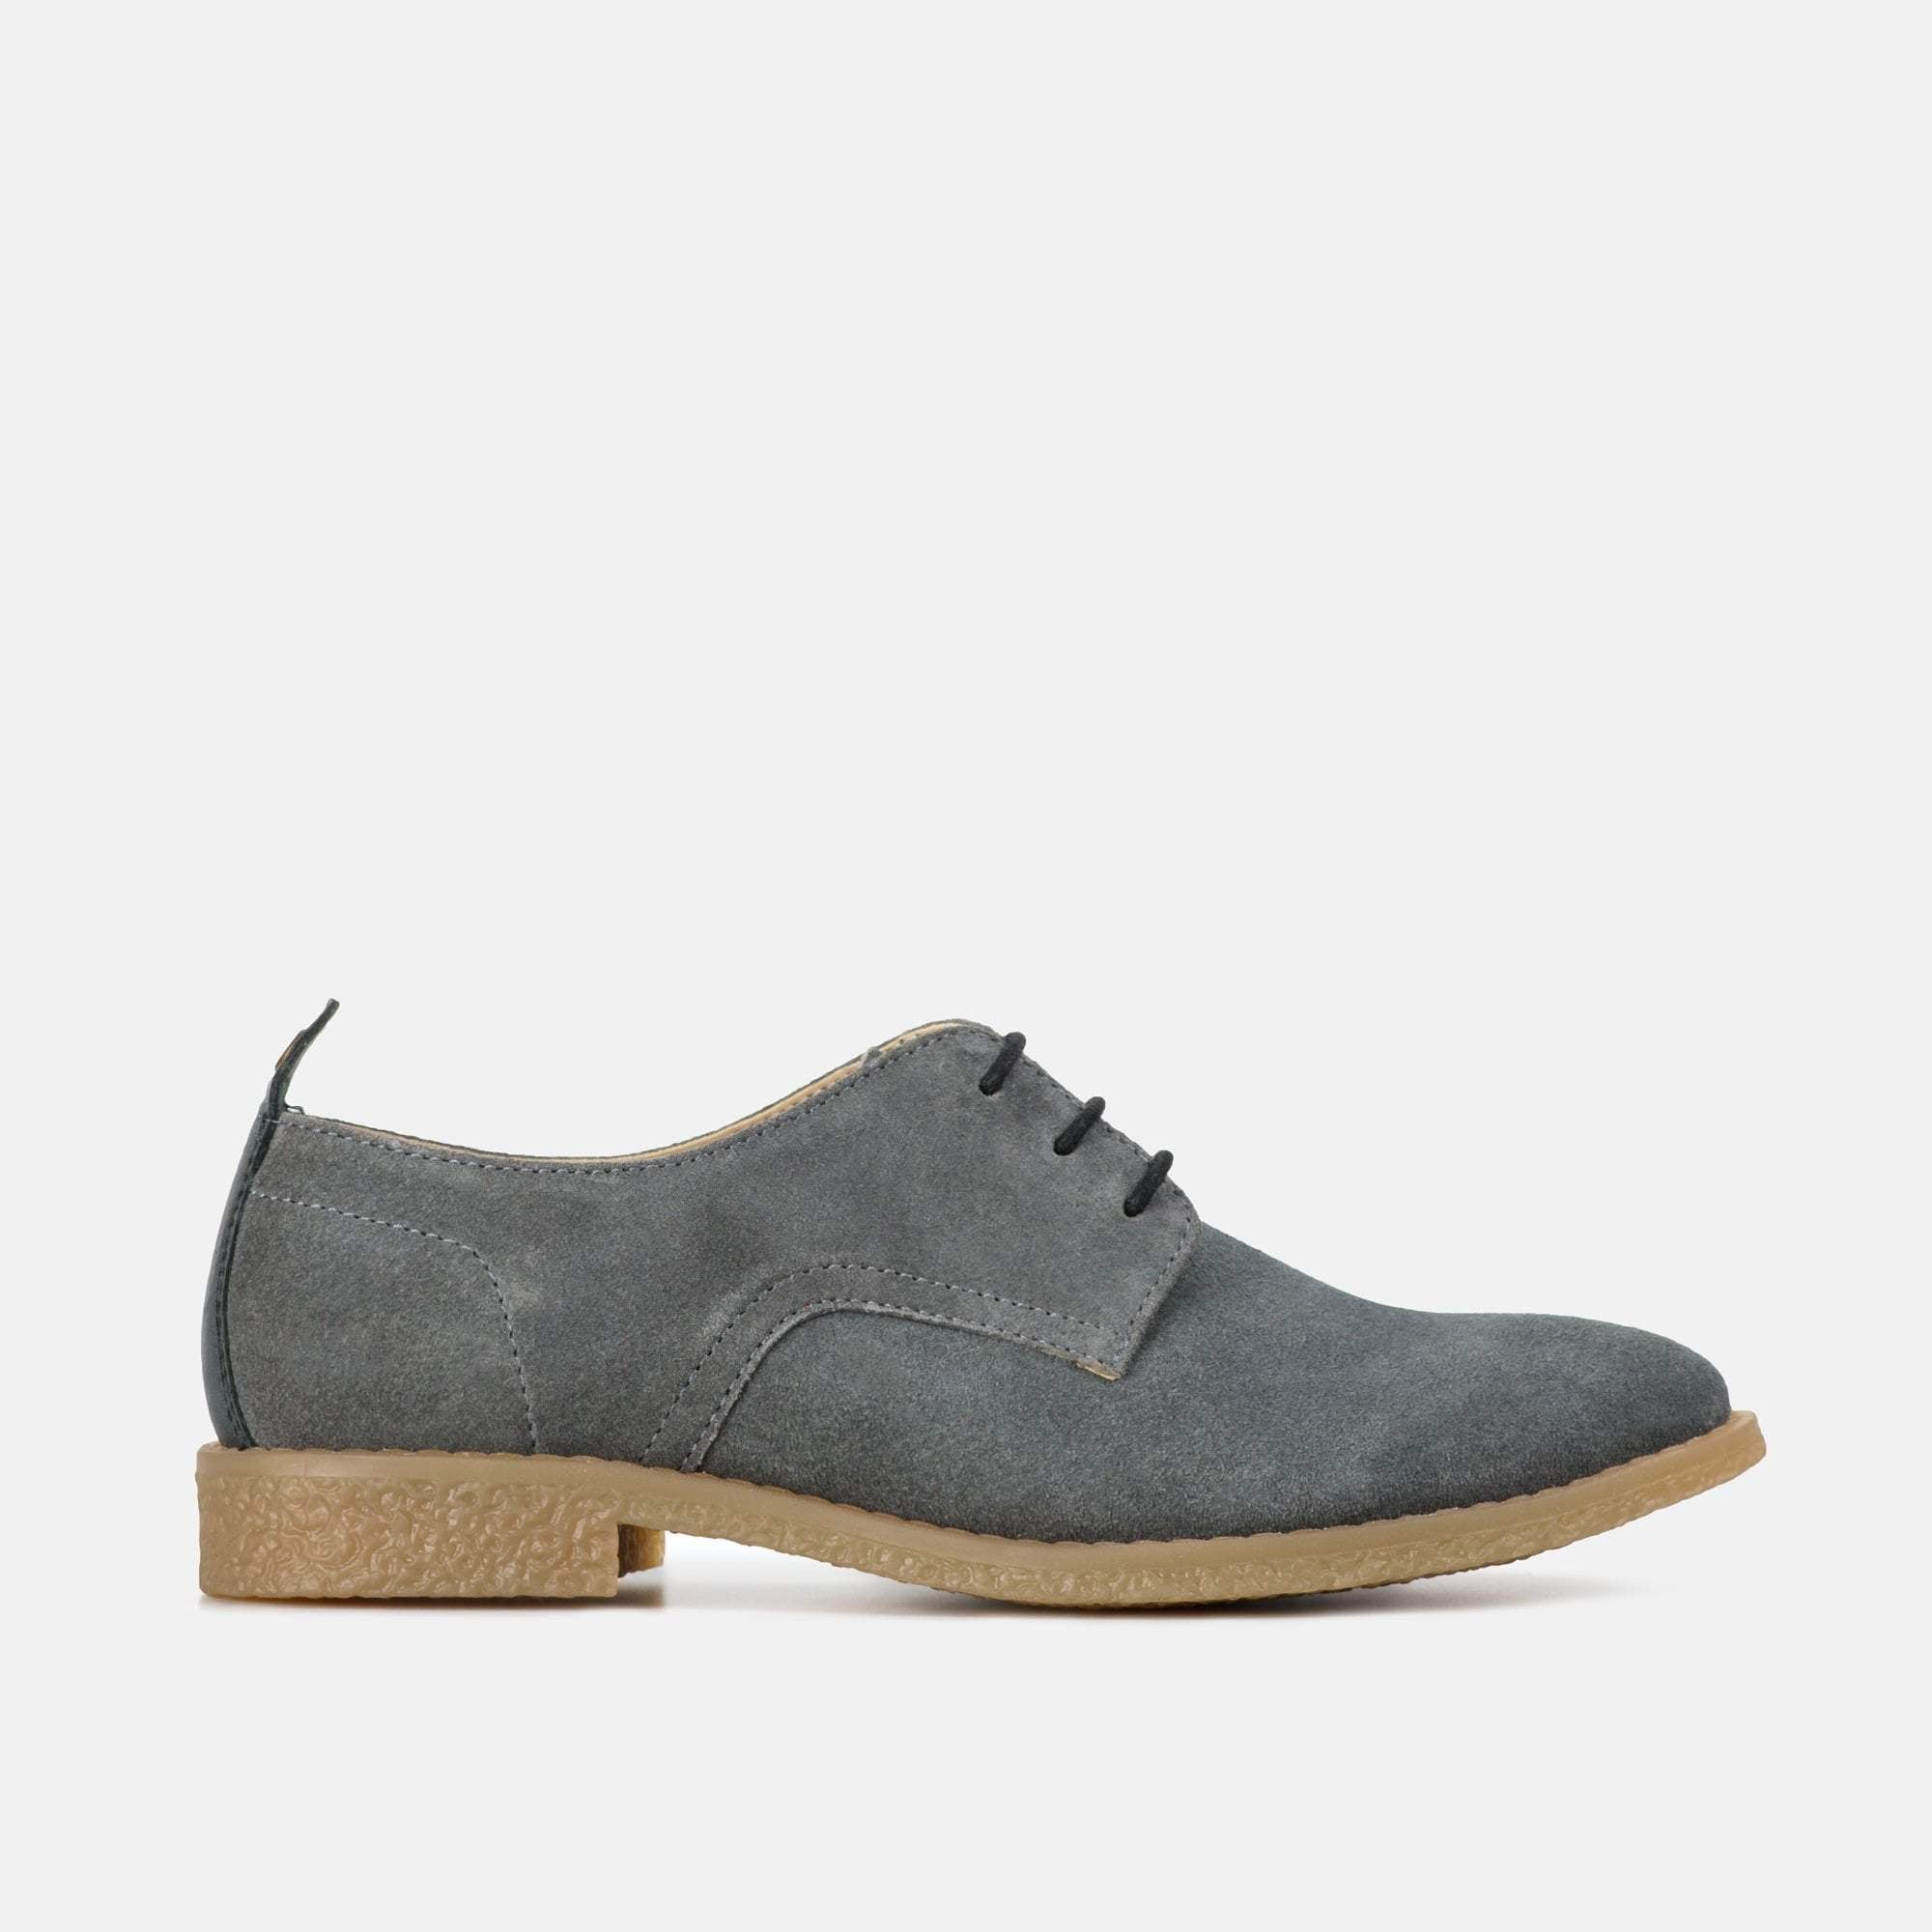 Redfoot Footwear UK 3 / EURO 36 / US 5 / Grey / Suede MIA LIGHT GREY